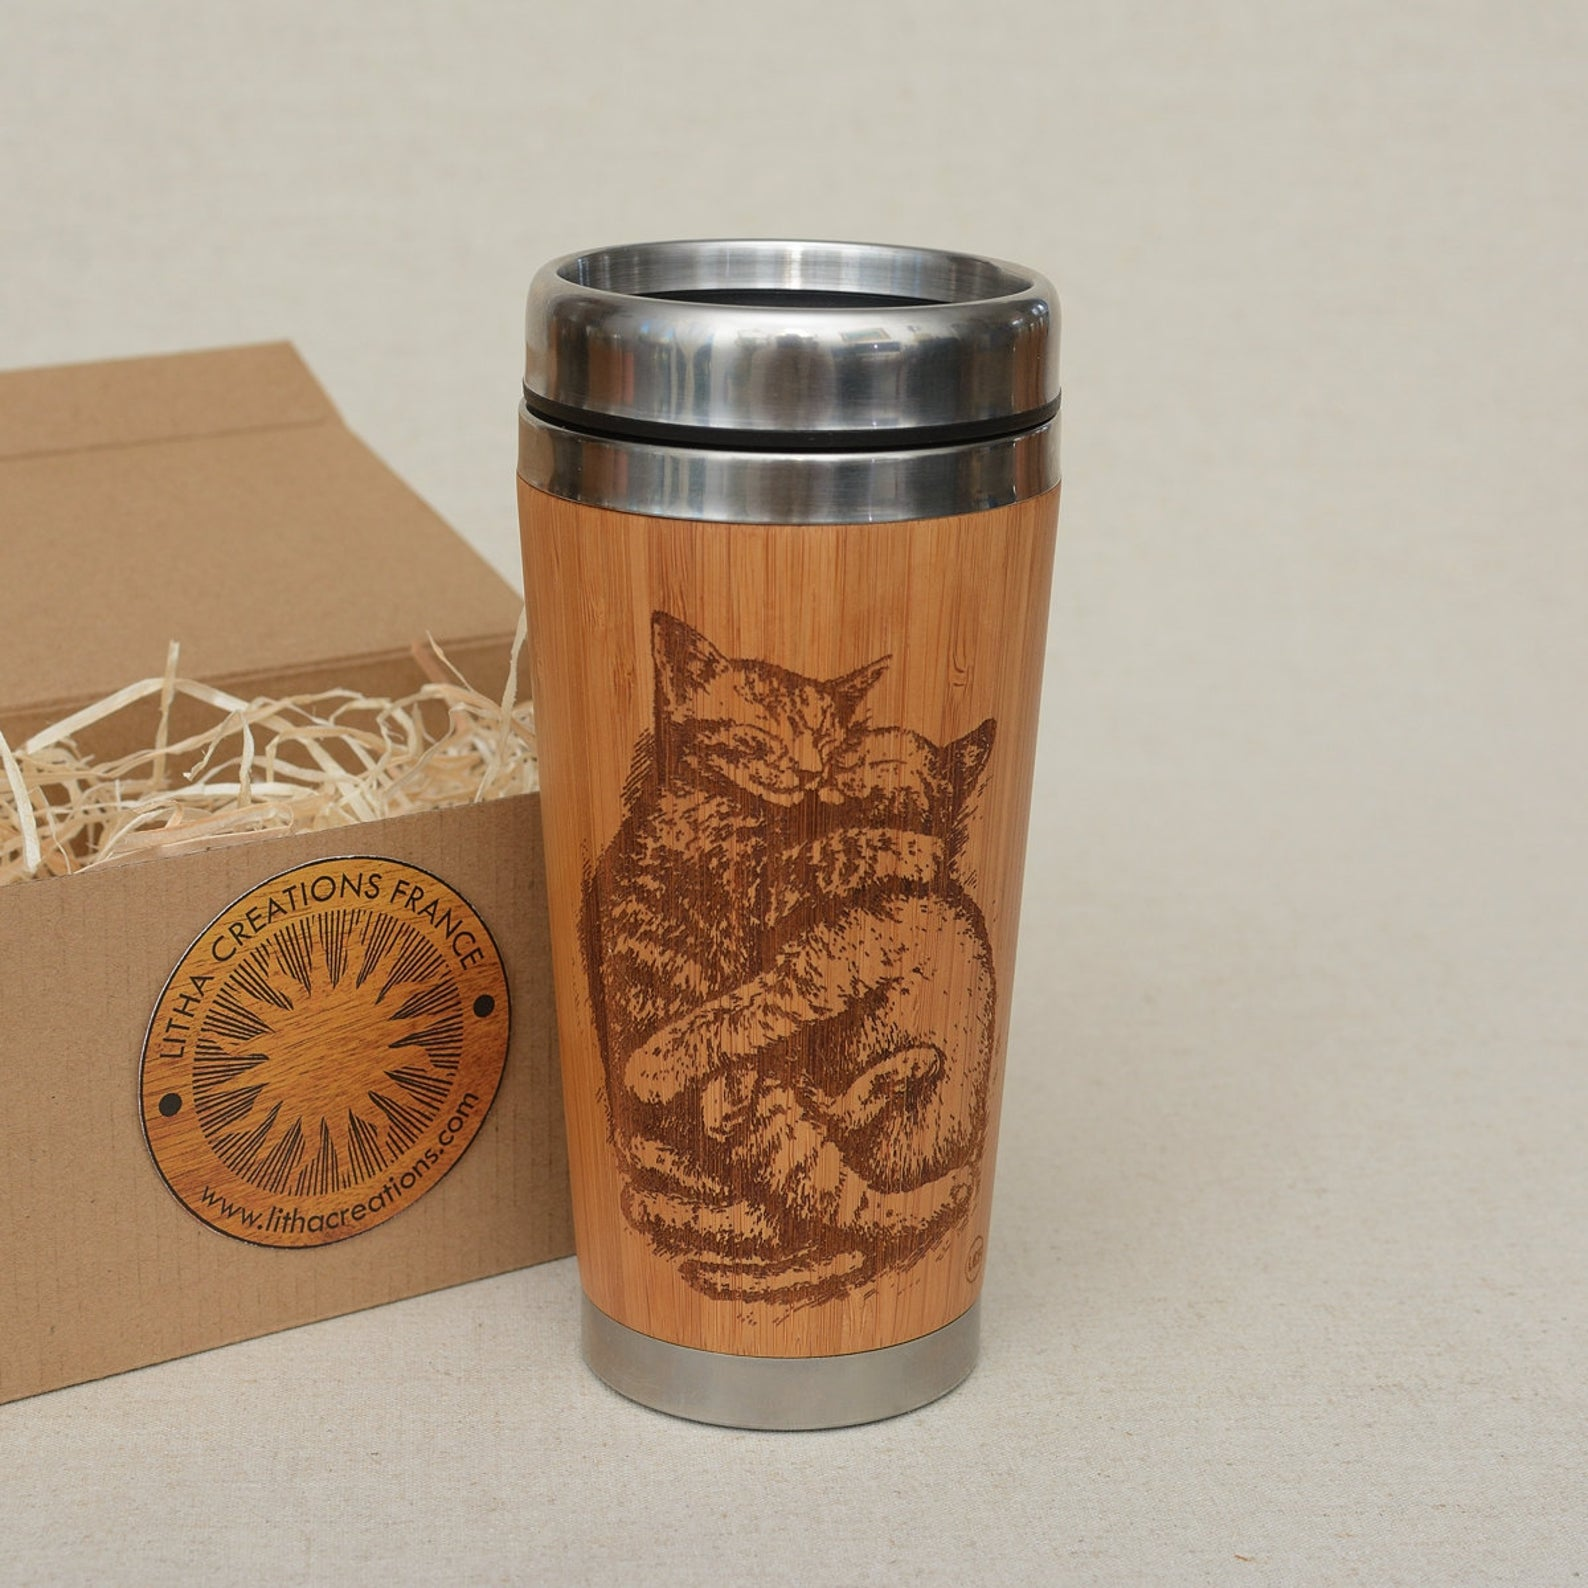 Wooden mug with engraved cat photo on it